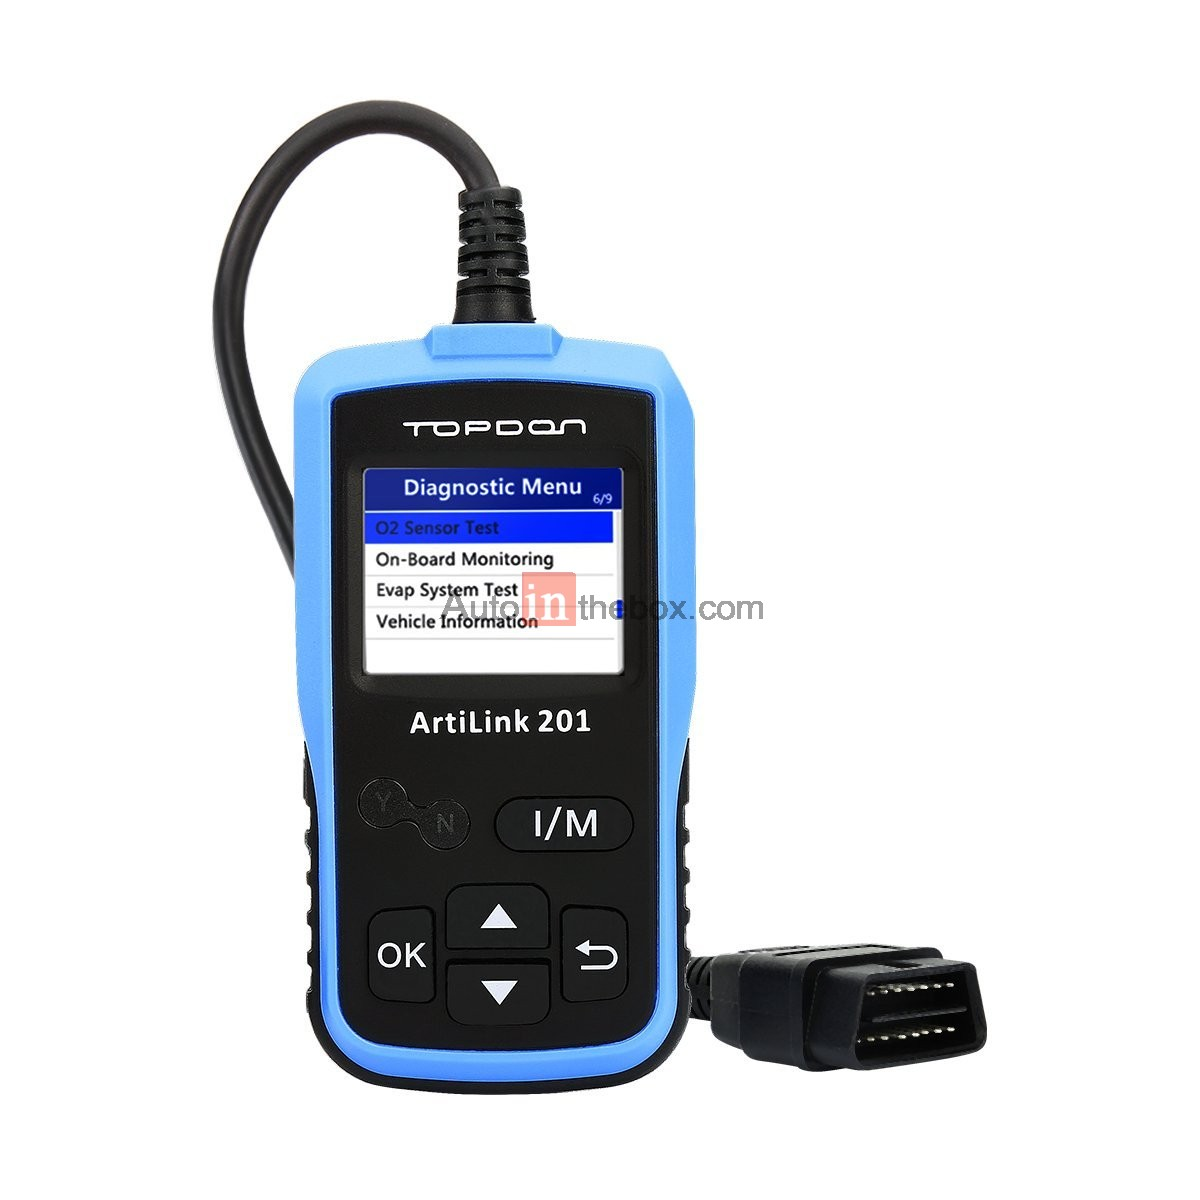 TOPDON ArtiLink201 Auto Diagnostic Tool Inspect I/M Readiness Status  Vehicles Engine Emissions Read/Clear Trouble Codes Turn off MIL and Test O2